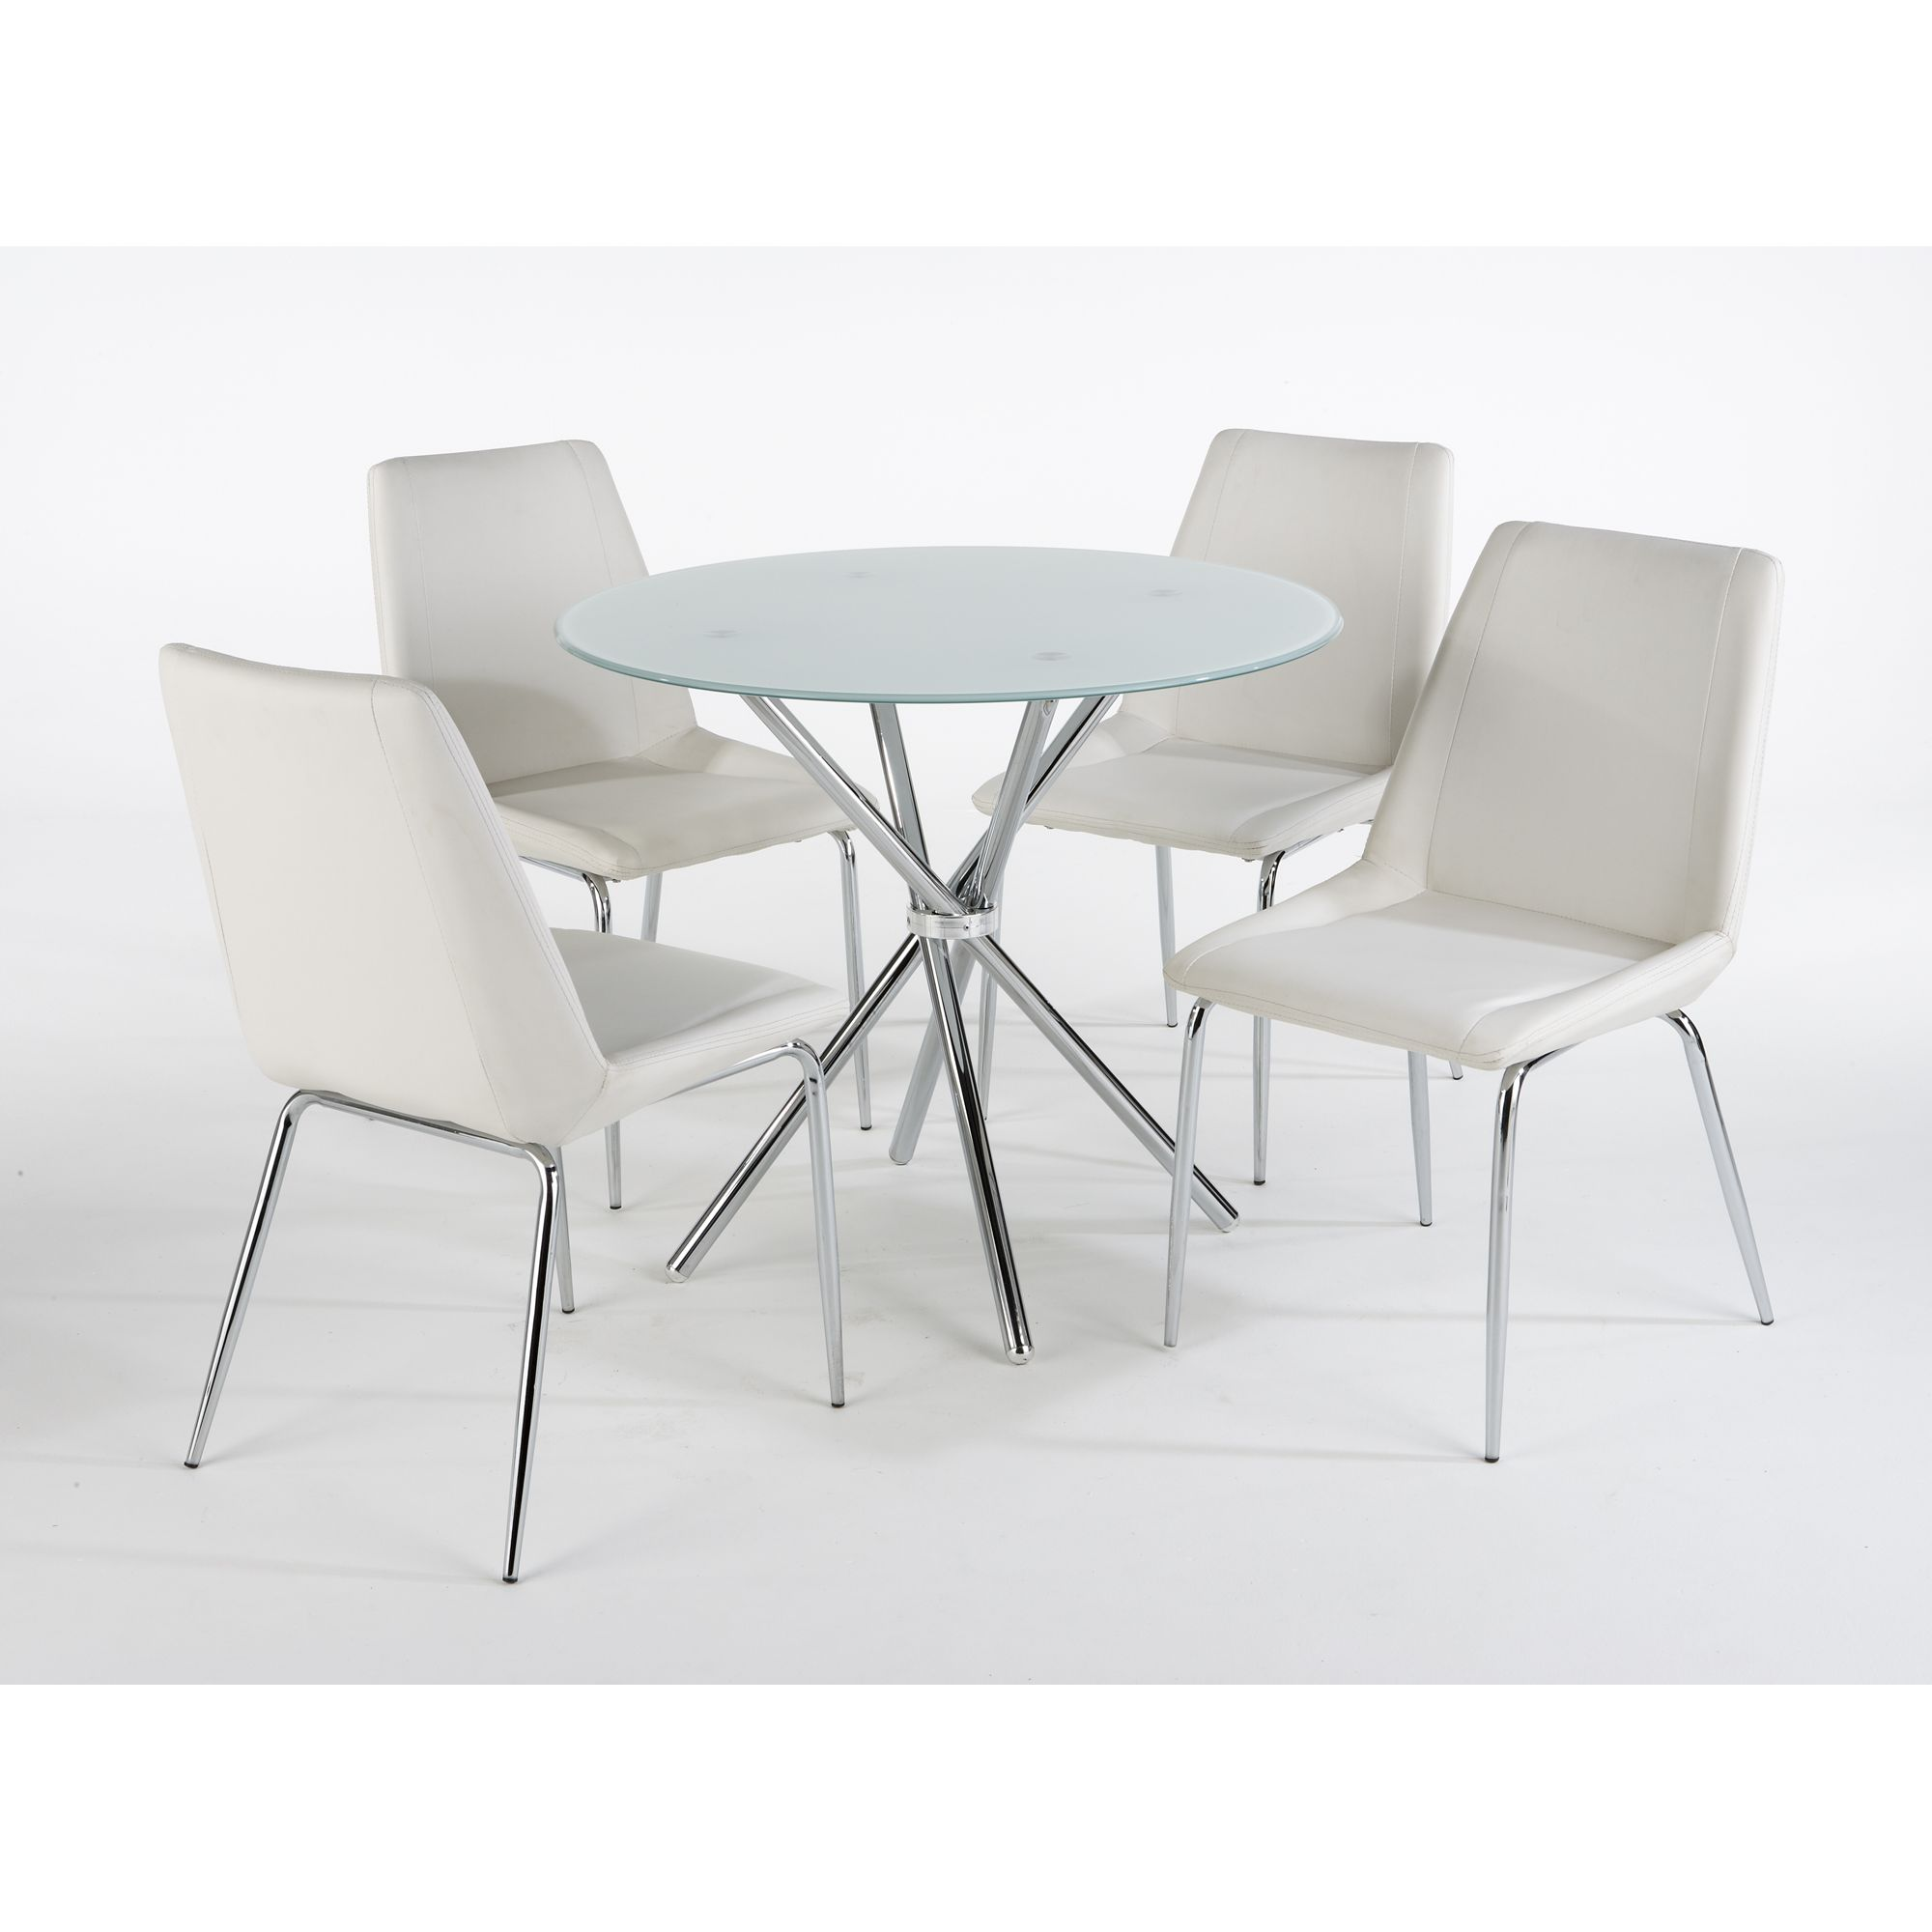 Elements Miami 5 Piece Dining Table Set - Clear at Tesco Direct